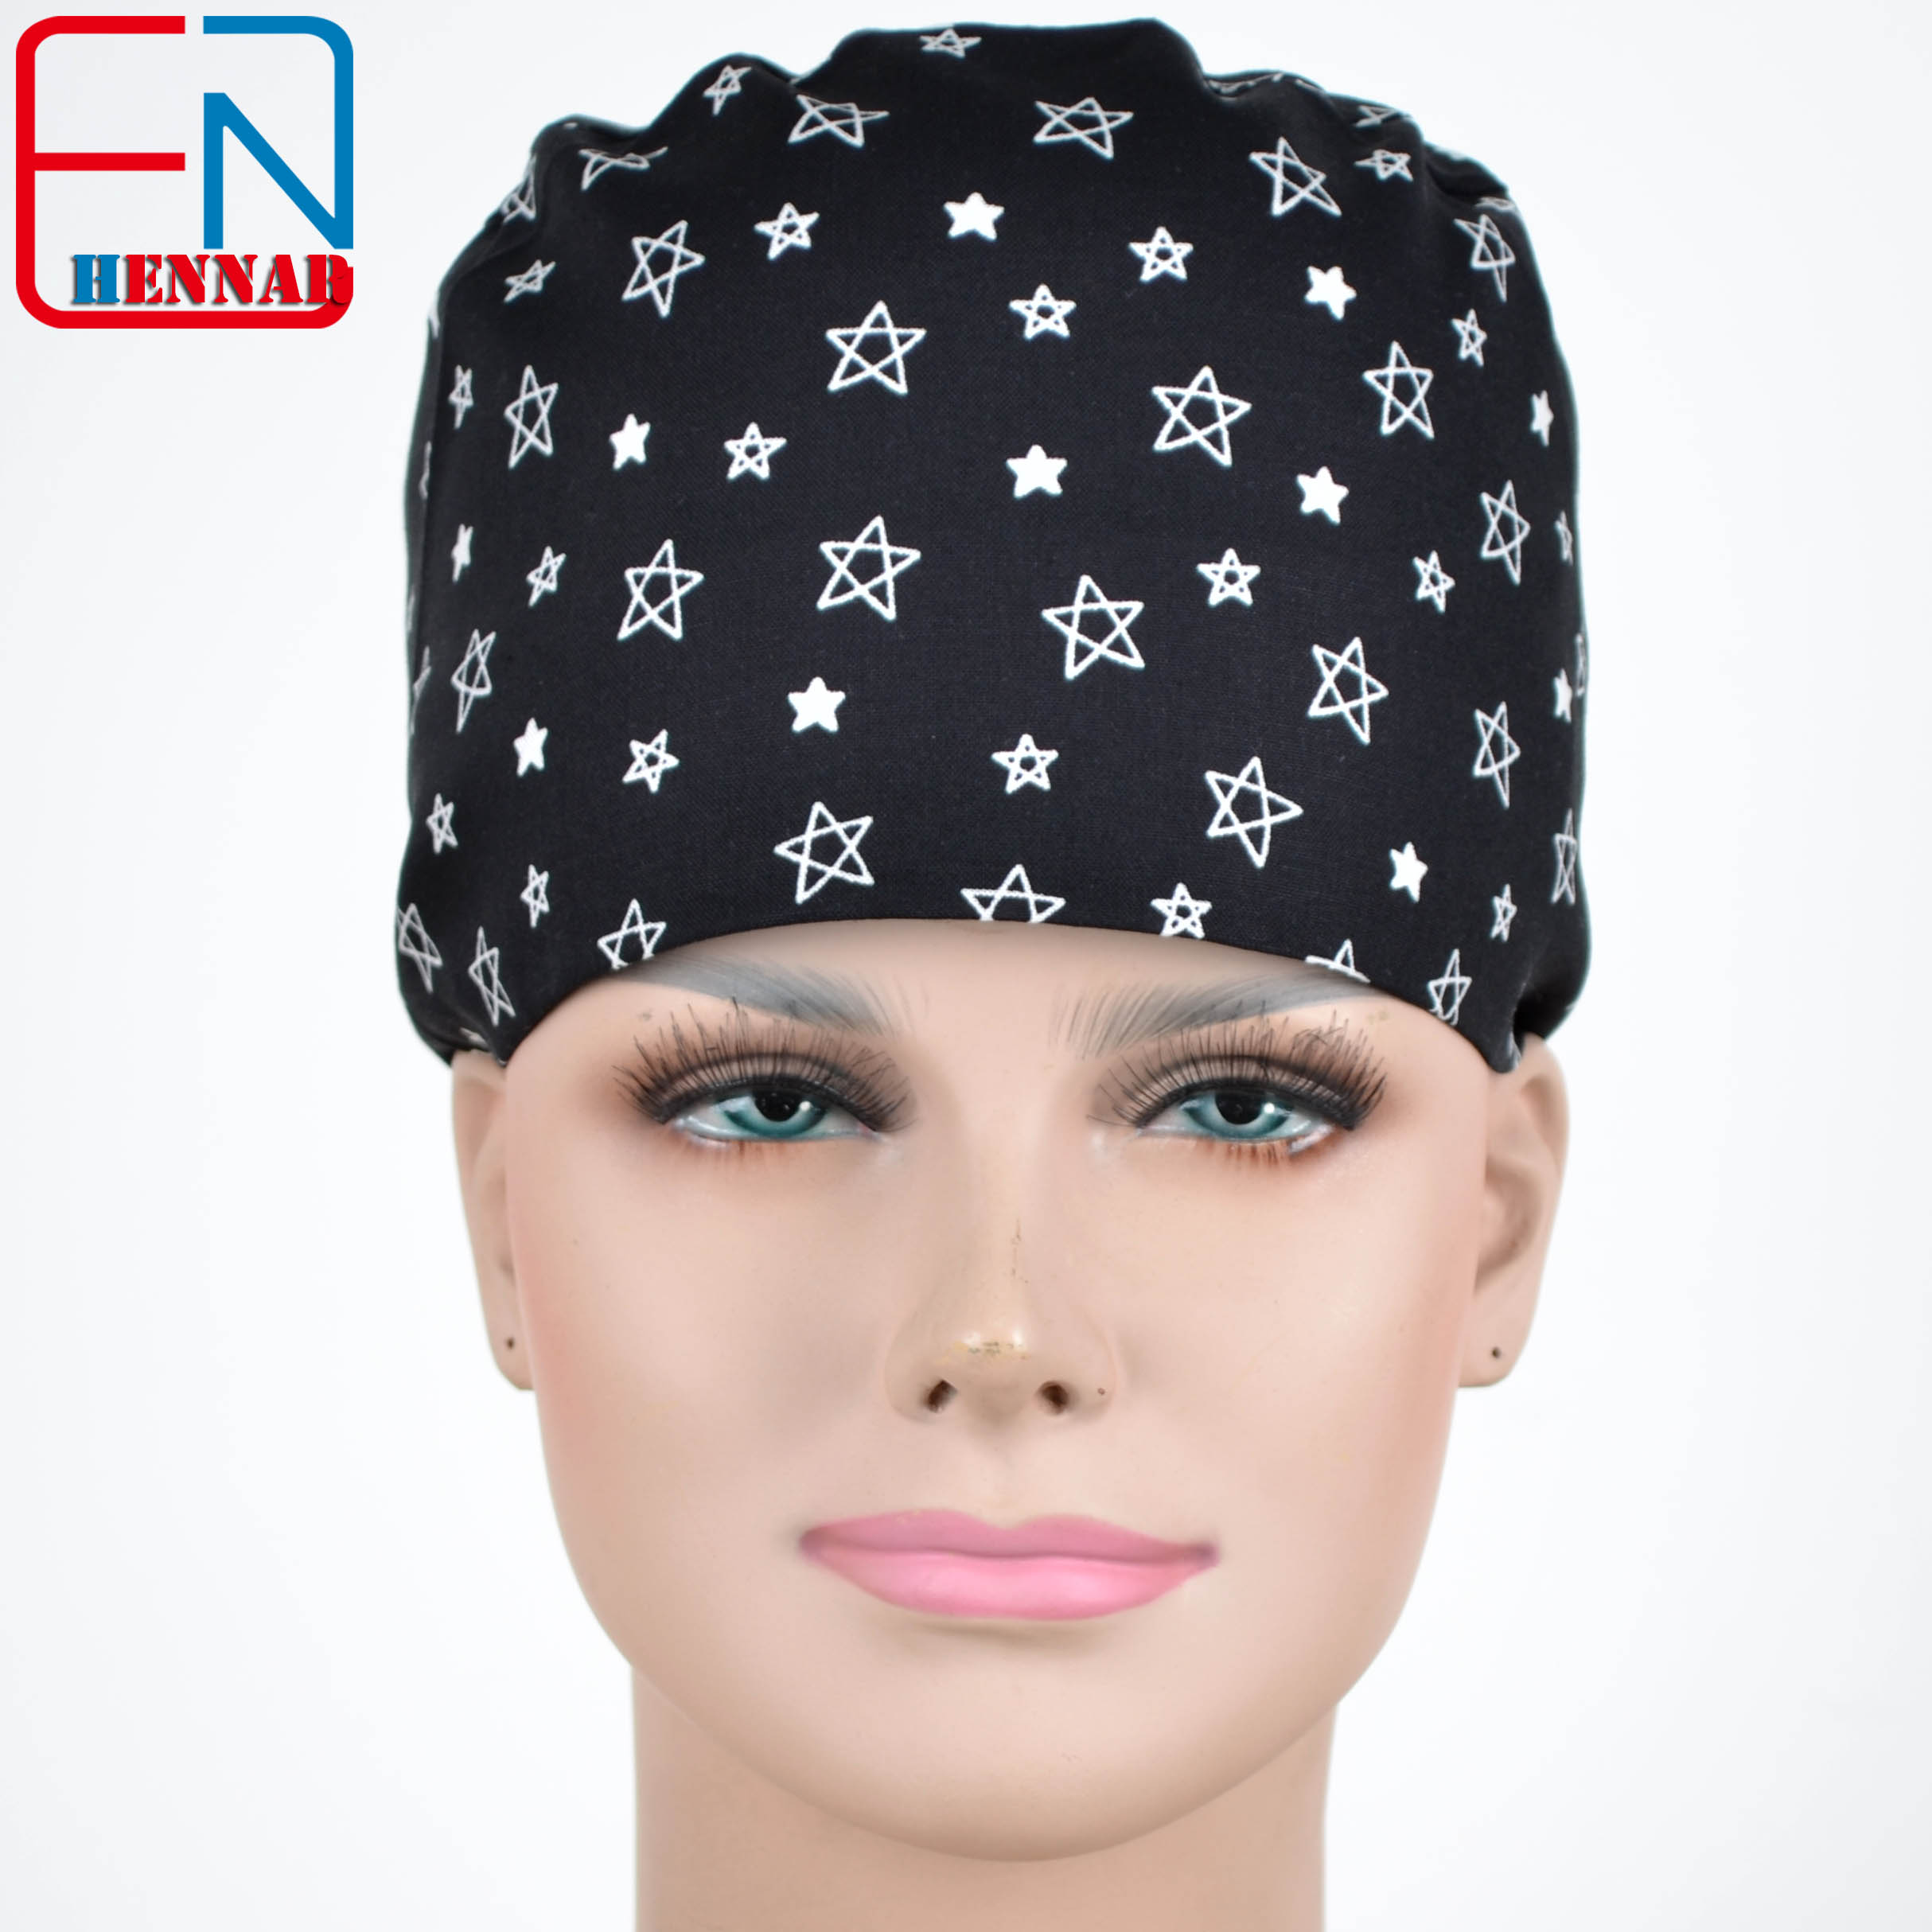 NEW Matin Long Hair Surgical Caps With Sweatband Doctors And Nurses 100% Cotton